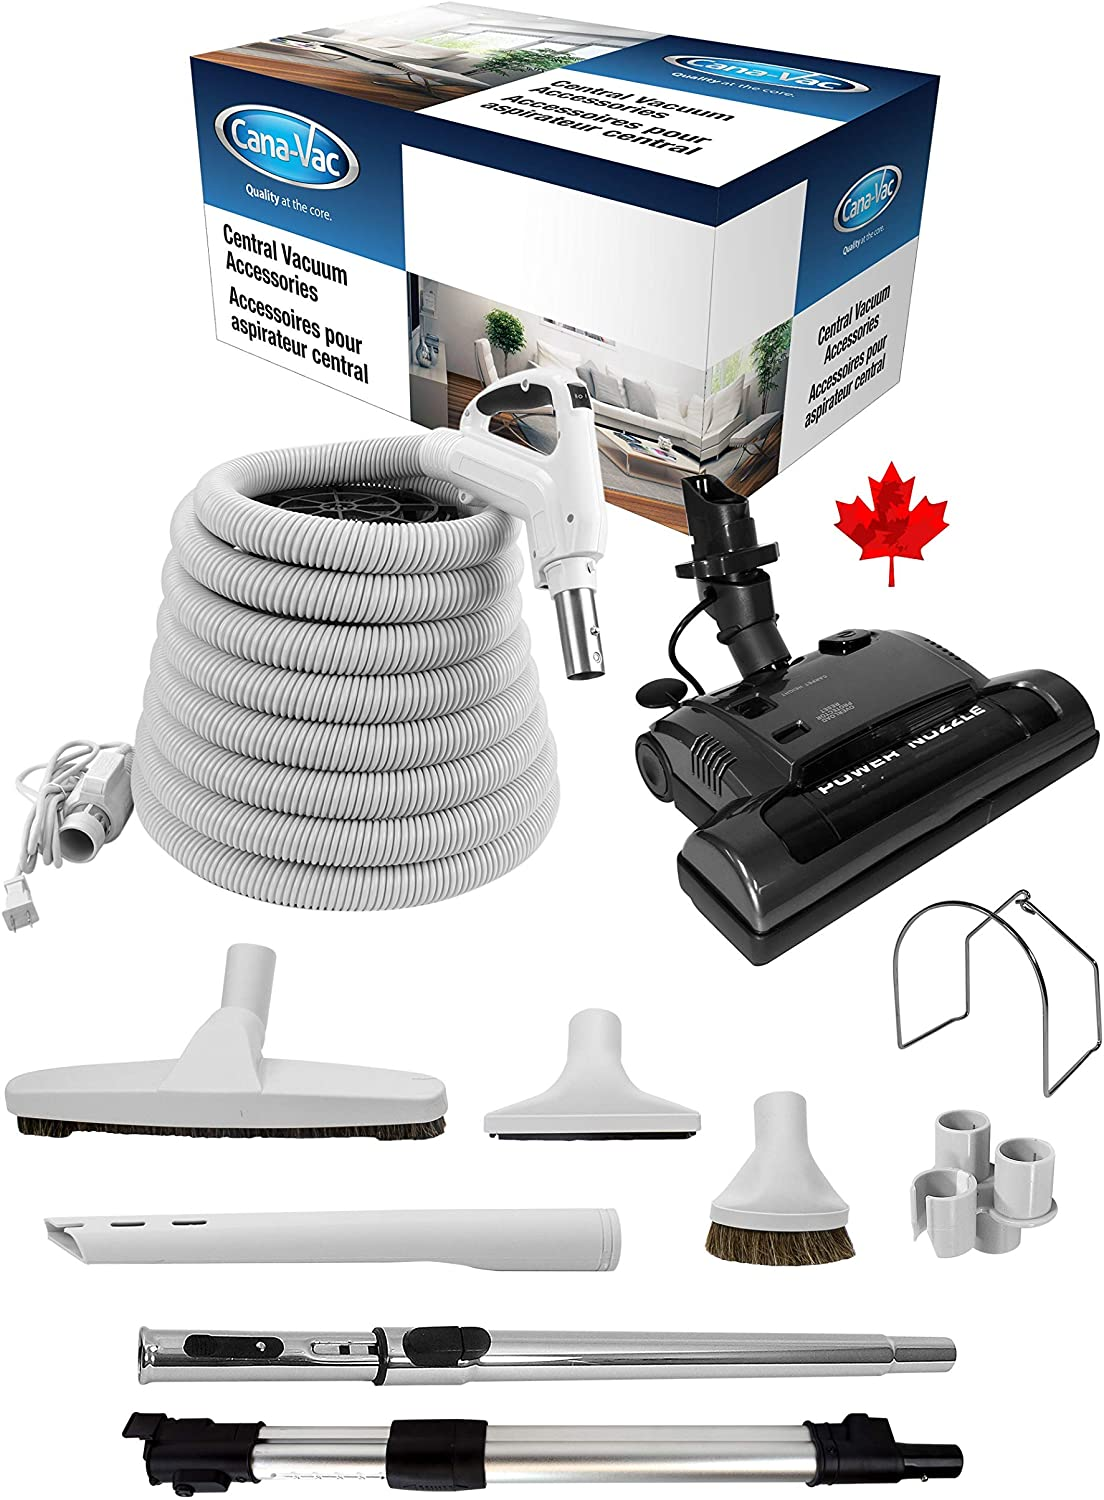 Canavac Essentials Electrical Accessory Kit with PN33 - Designed for Hardwood Floors, Area Rugs, Carpeting. Universal fits all 1&1/4 Size - Super Vacs